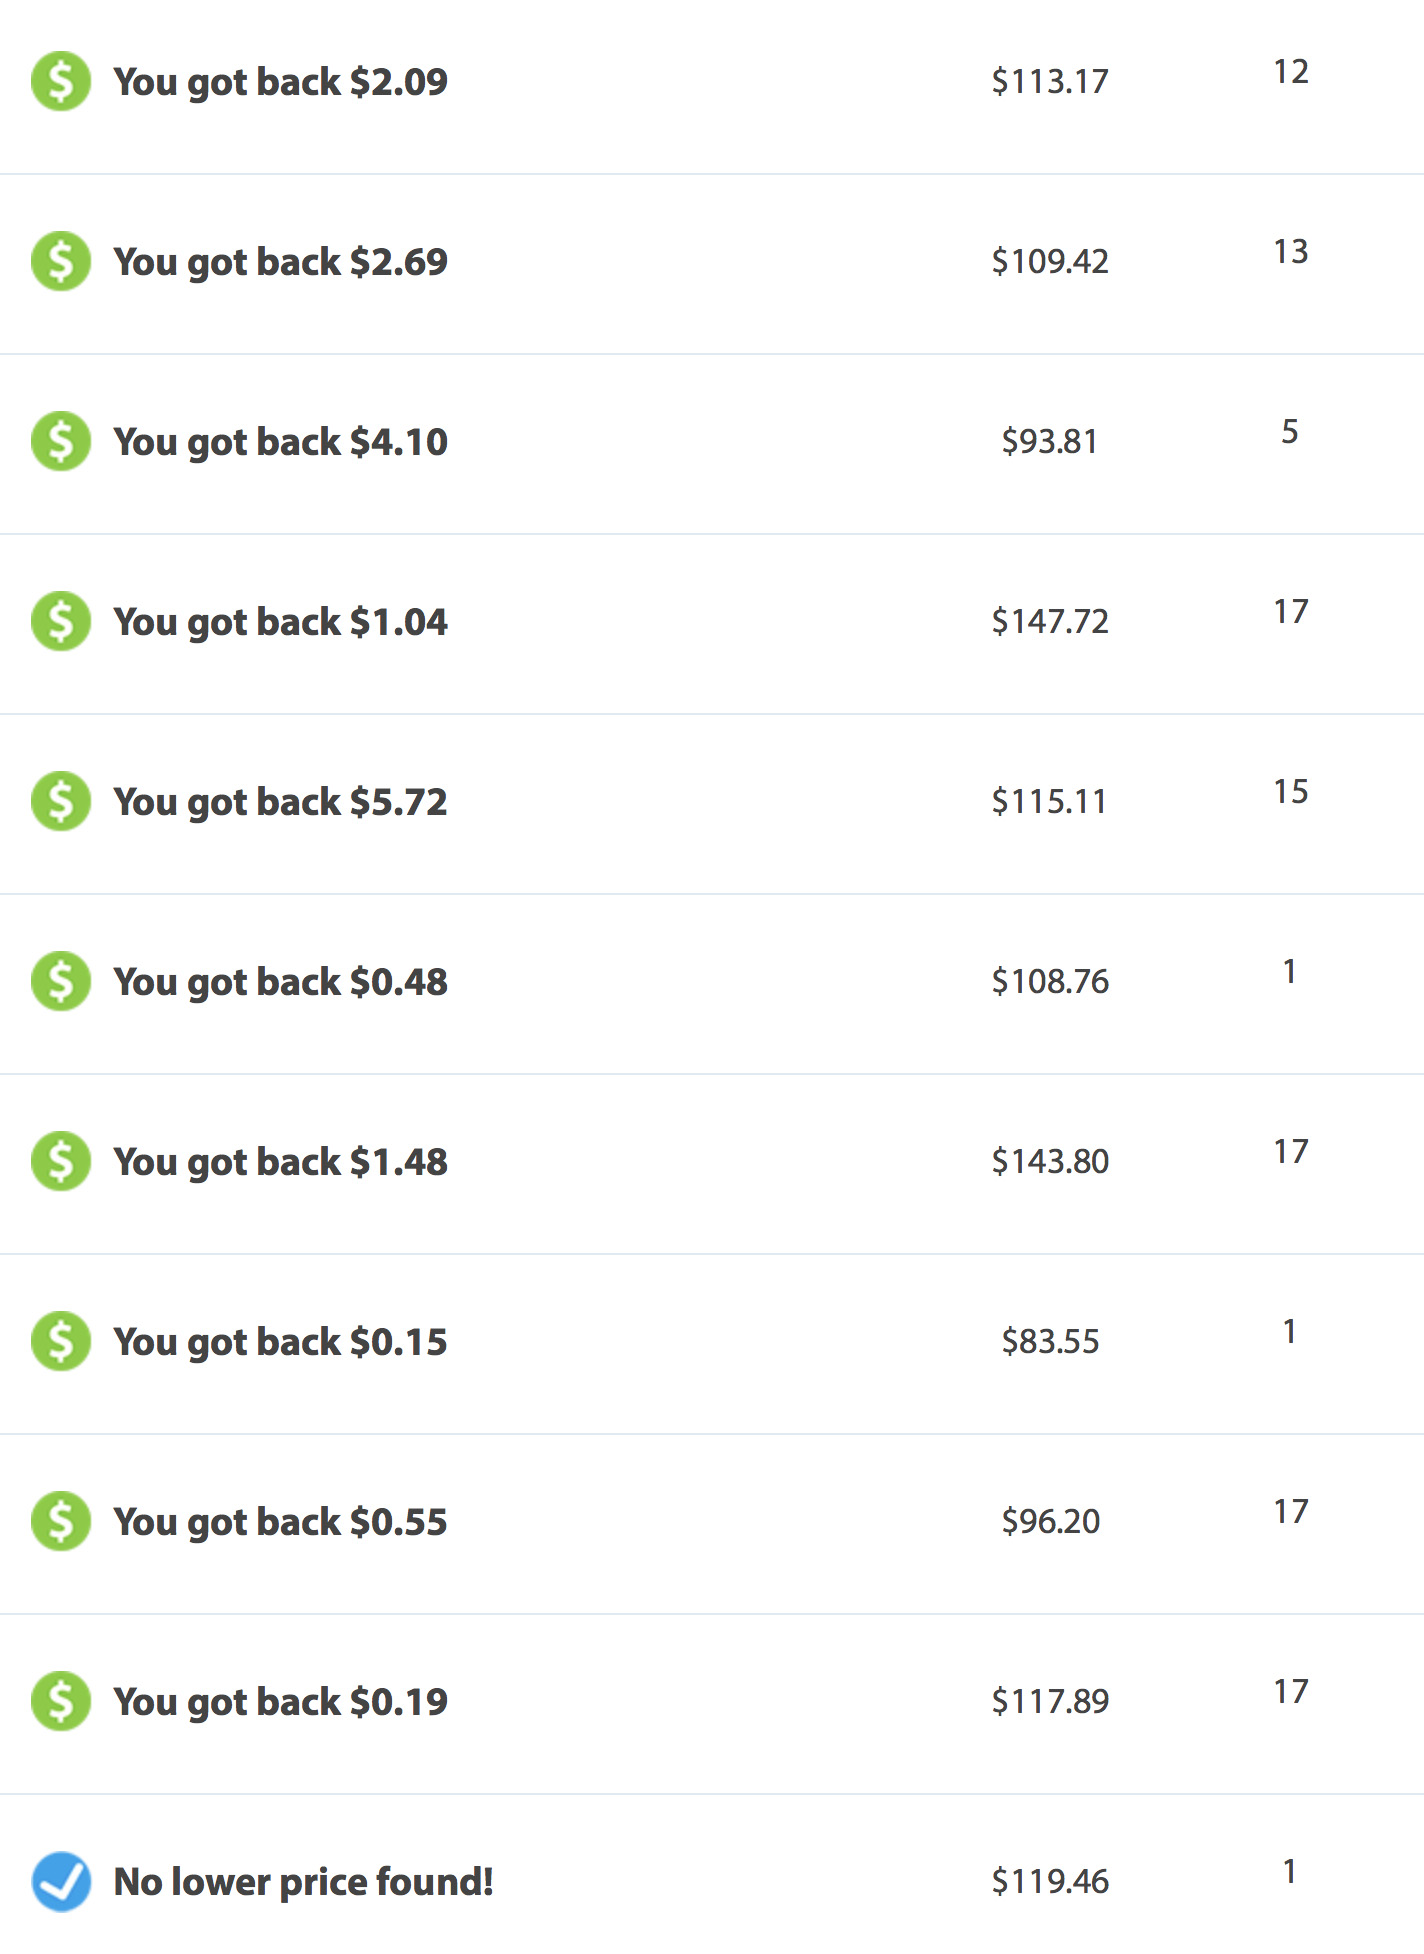 Walmart Savings Catcher cash back - real examples from my most recent orders